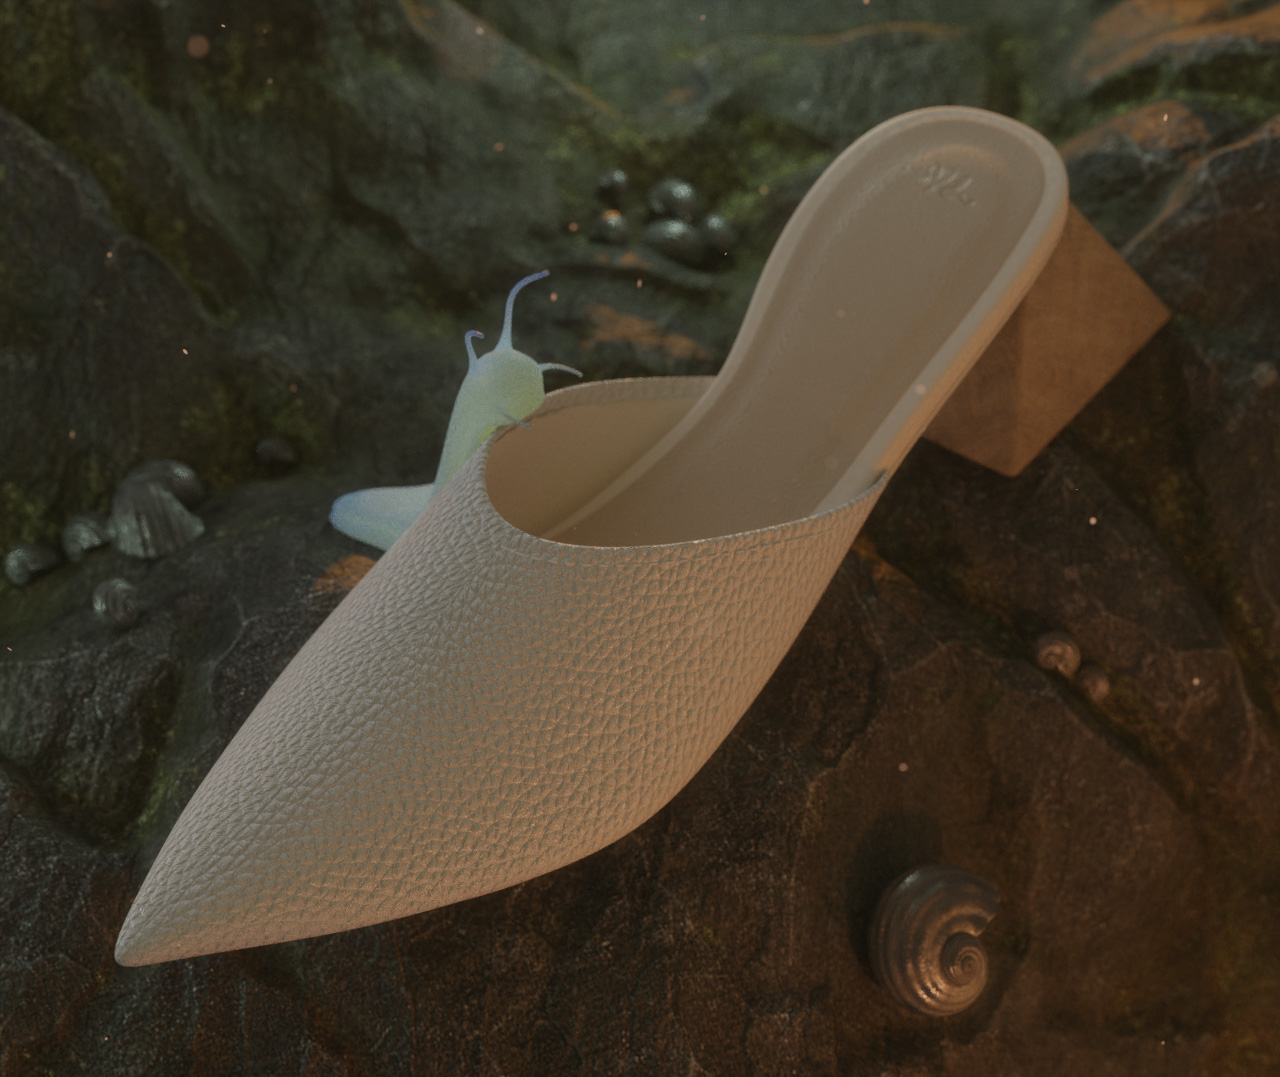 Shoe_and-snail